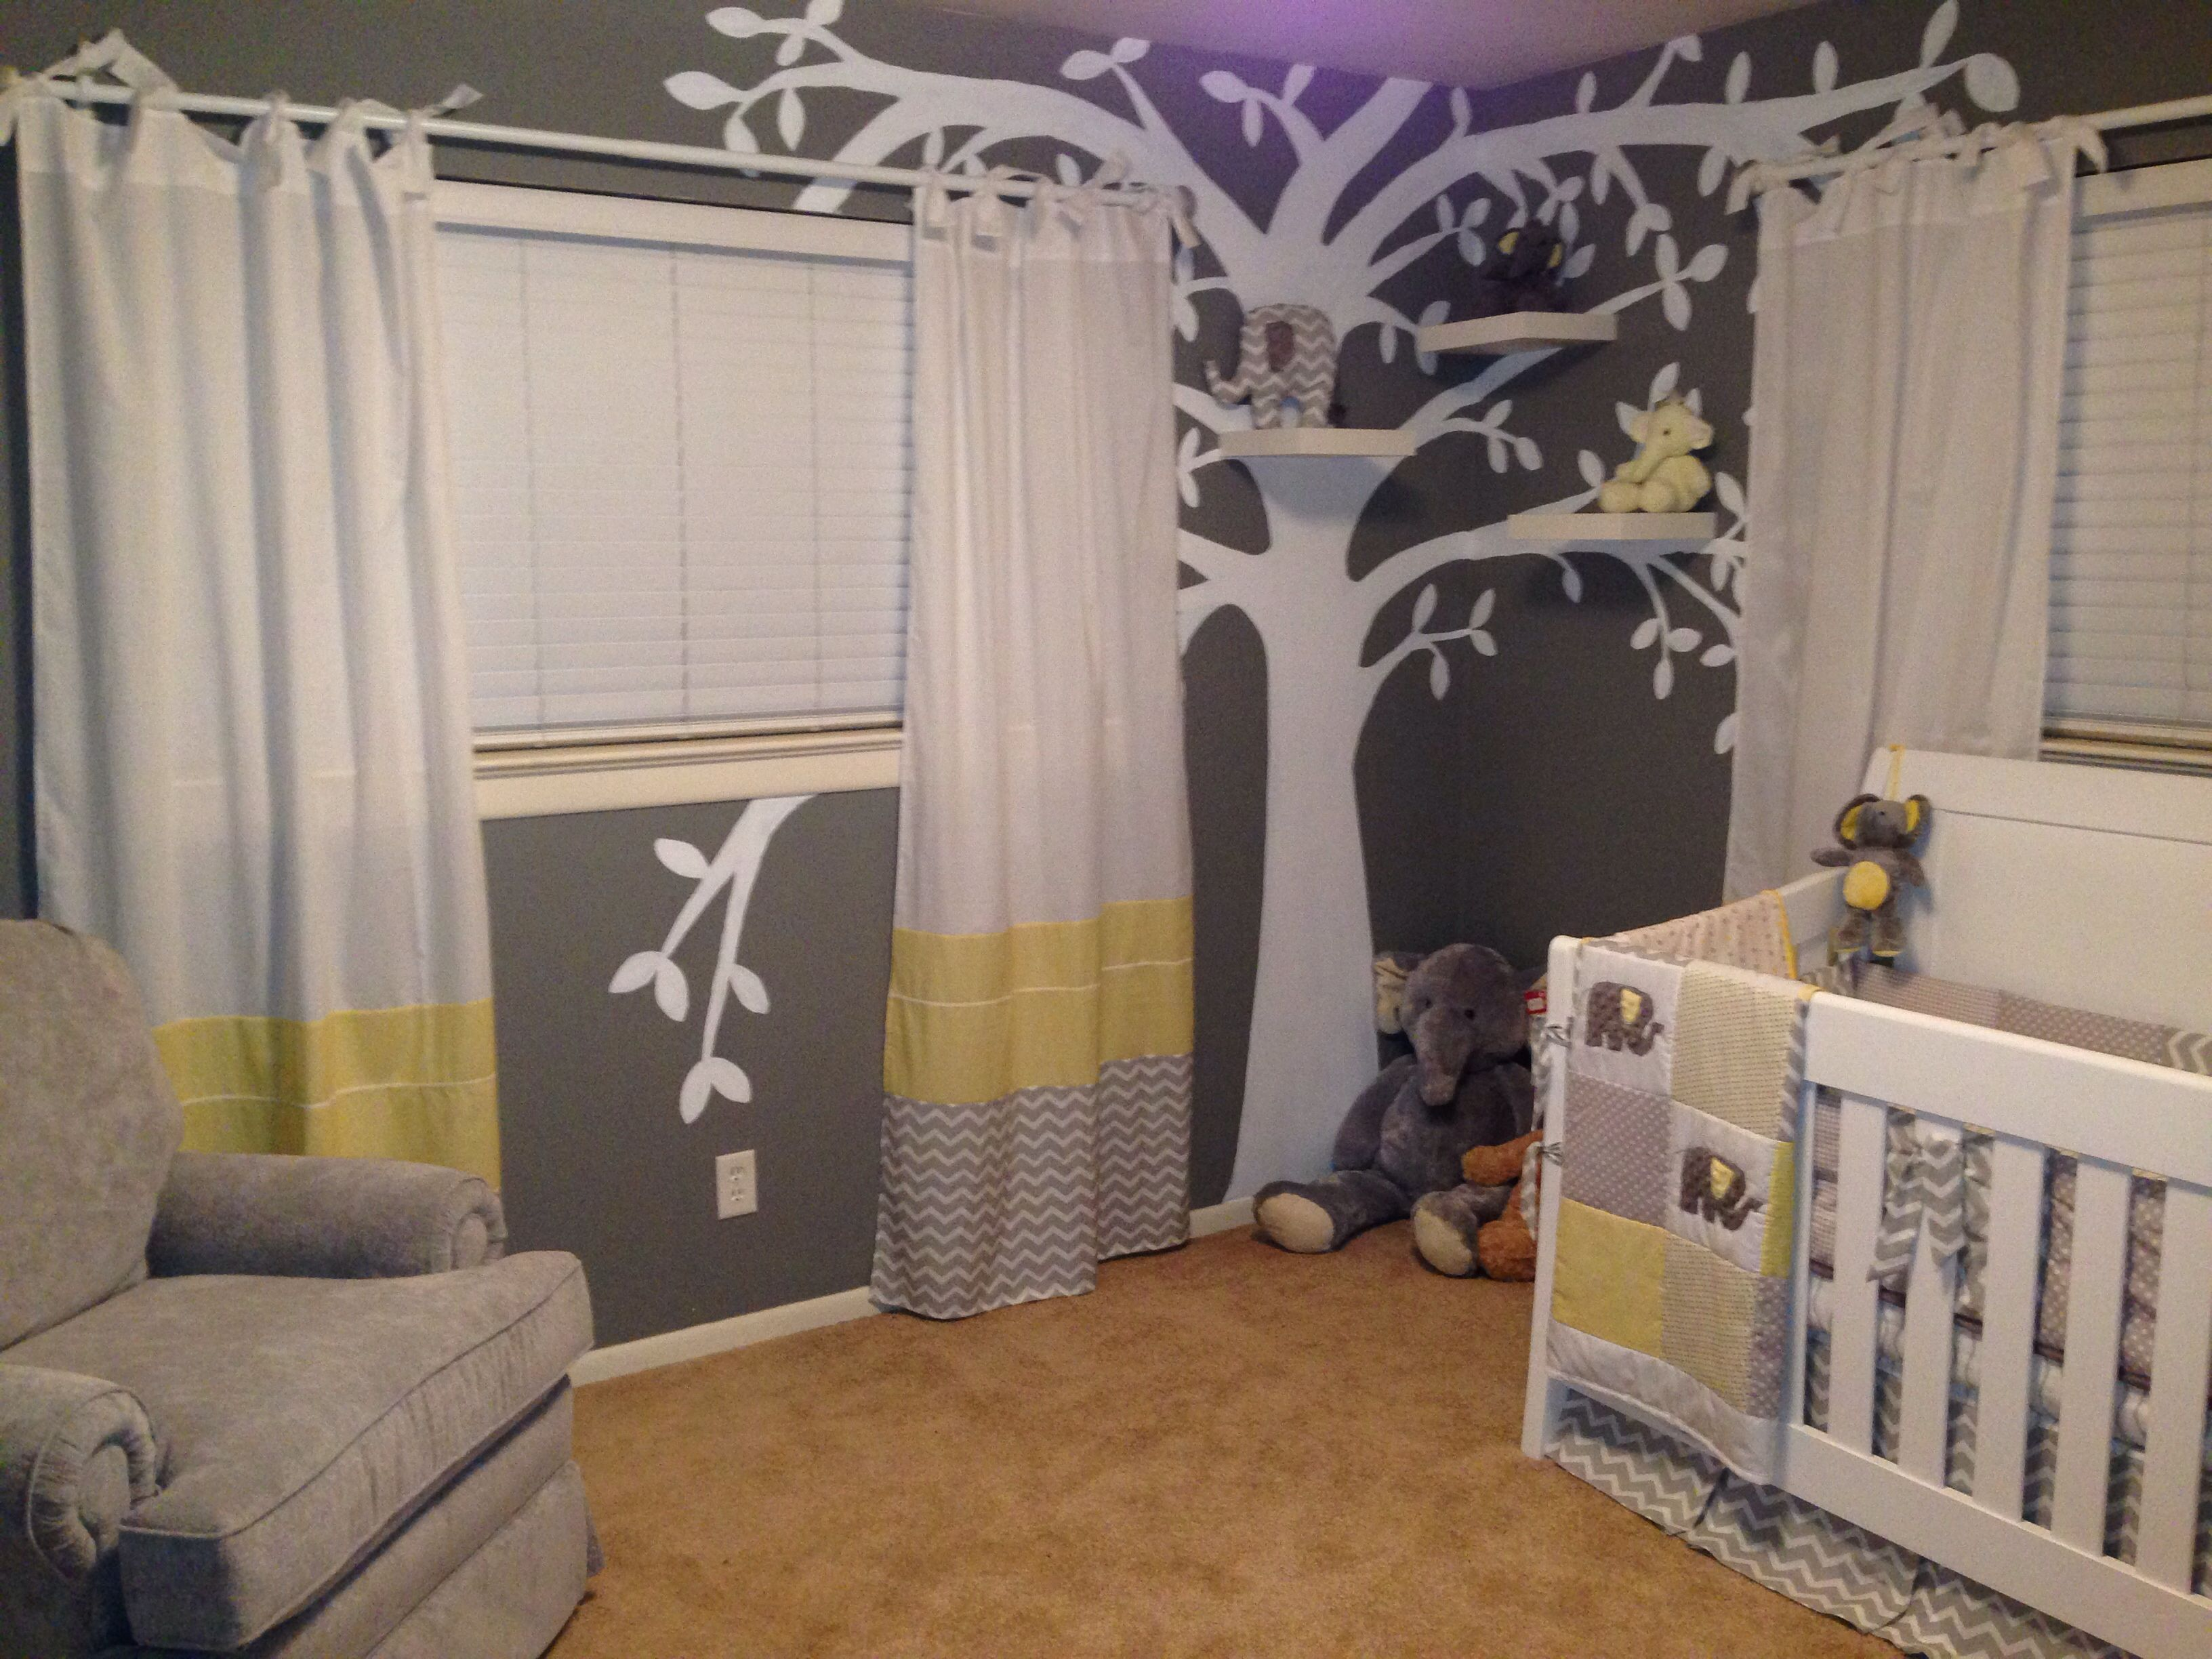 josiah 39 s yellow gray and white elephant themed nursery josiah 39 s nursery pinterest. Black Bedroom Furniture Sets. Home Design Ideas